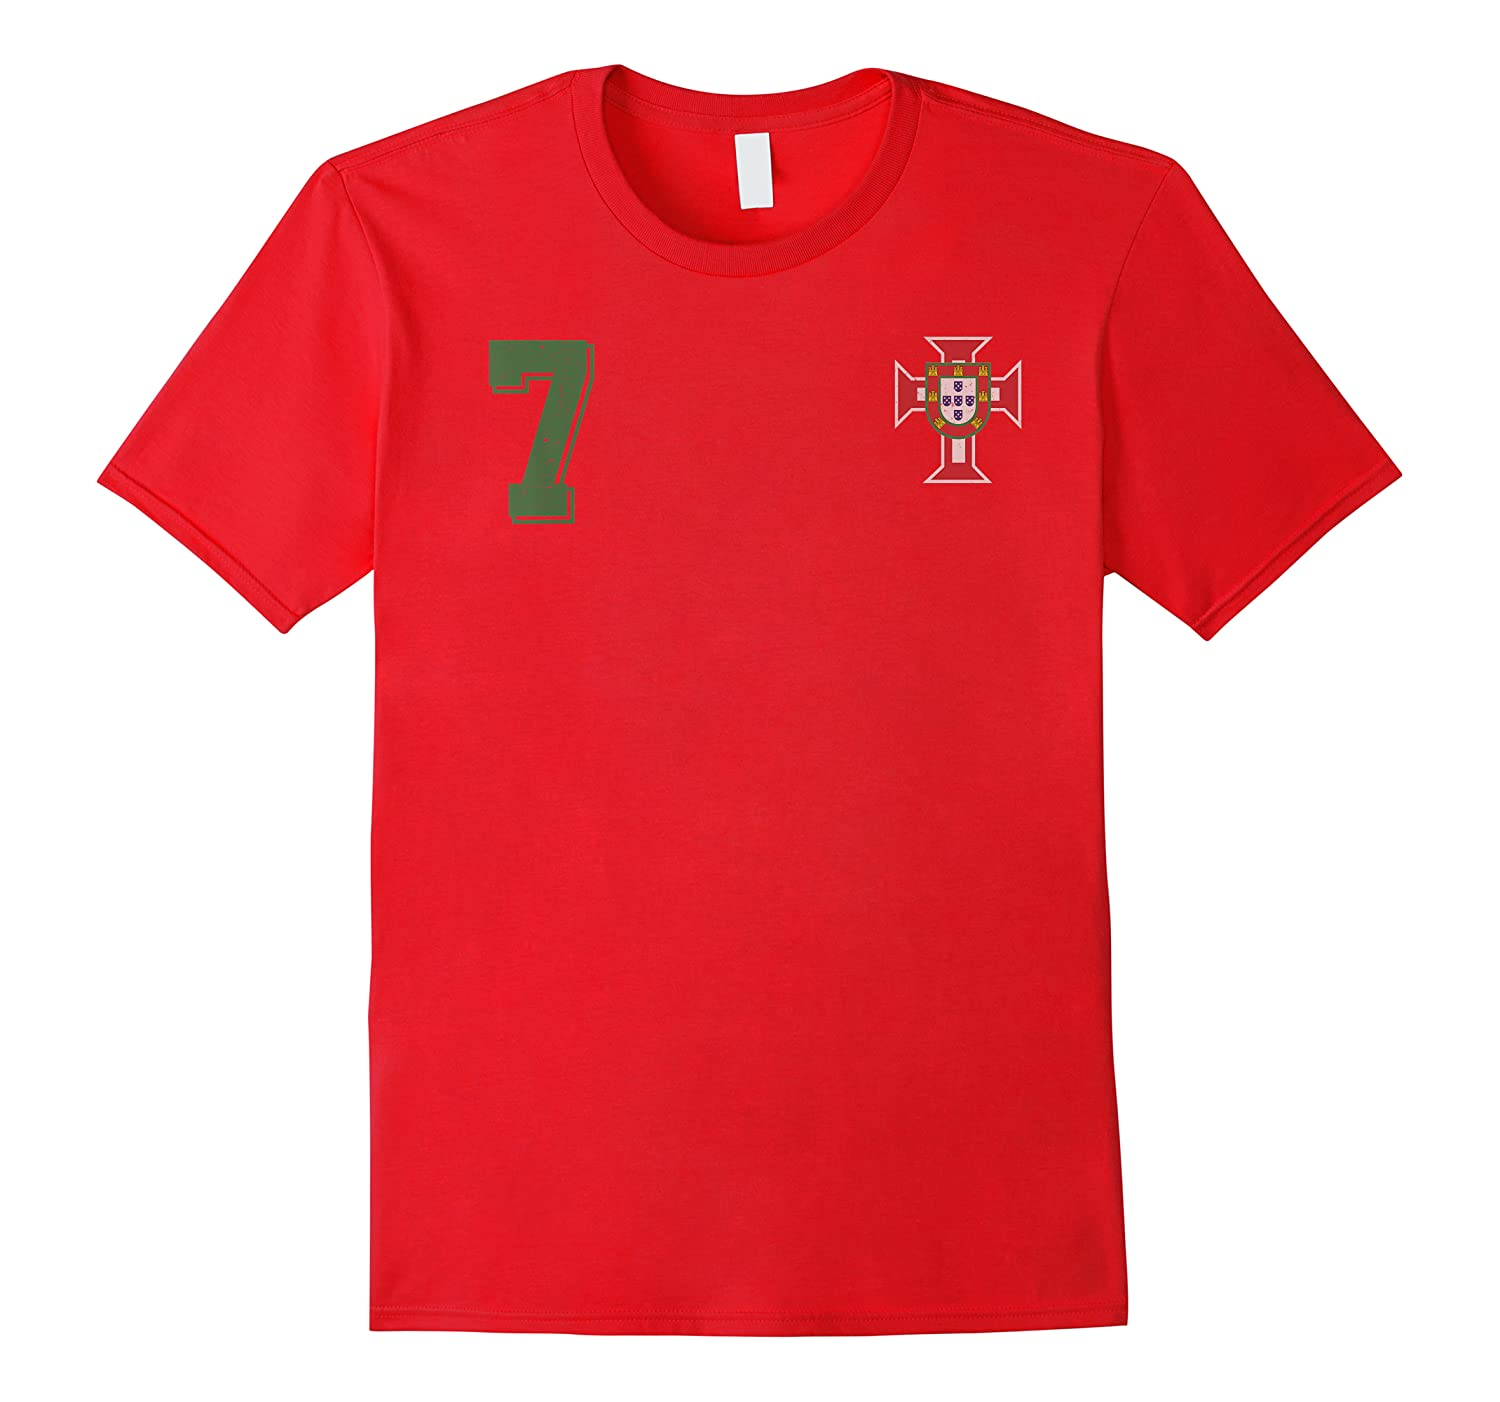 Portugal Design In Football Soccer Style For Portuguese Fans T-shirt